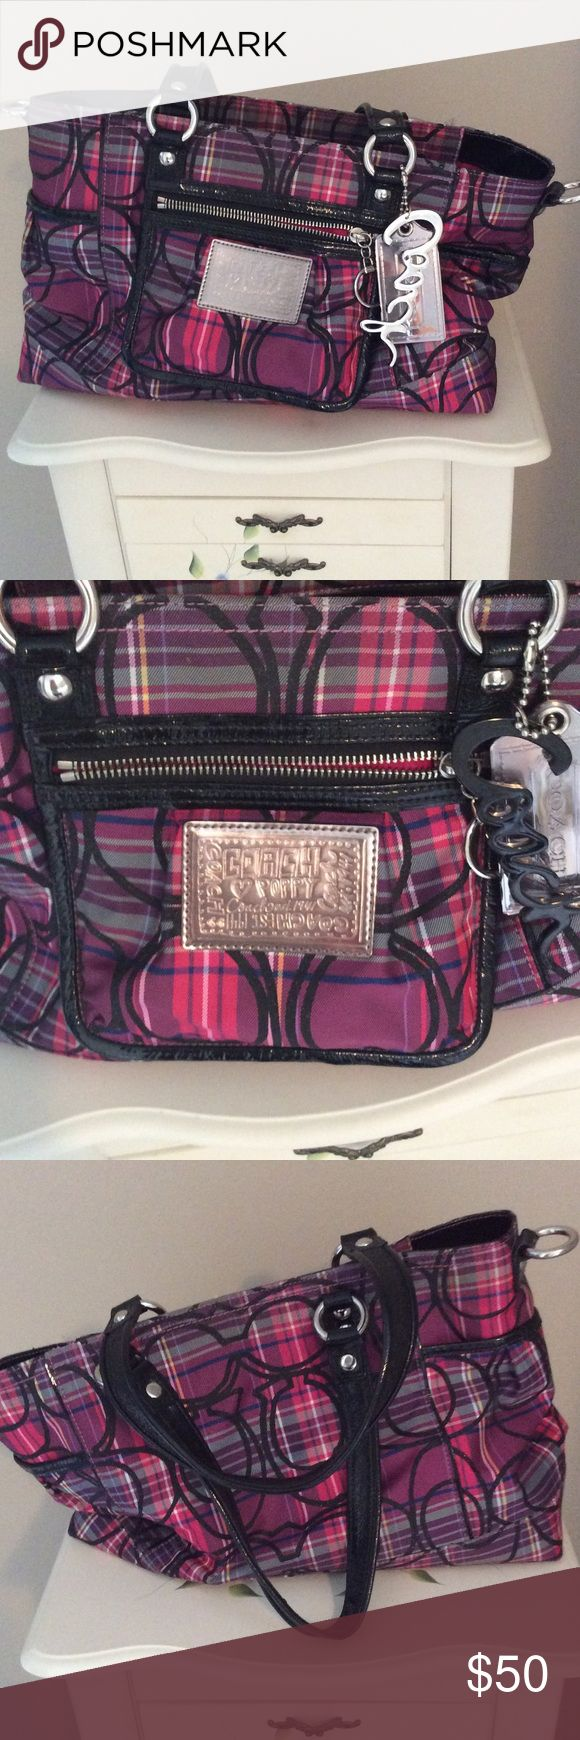 Purple & pink coach purse Coach purse from the poppy collection. Still in really great condition. Coach Bags Shoulder Bags